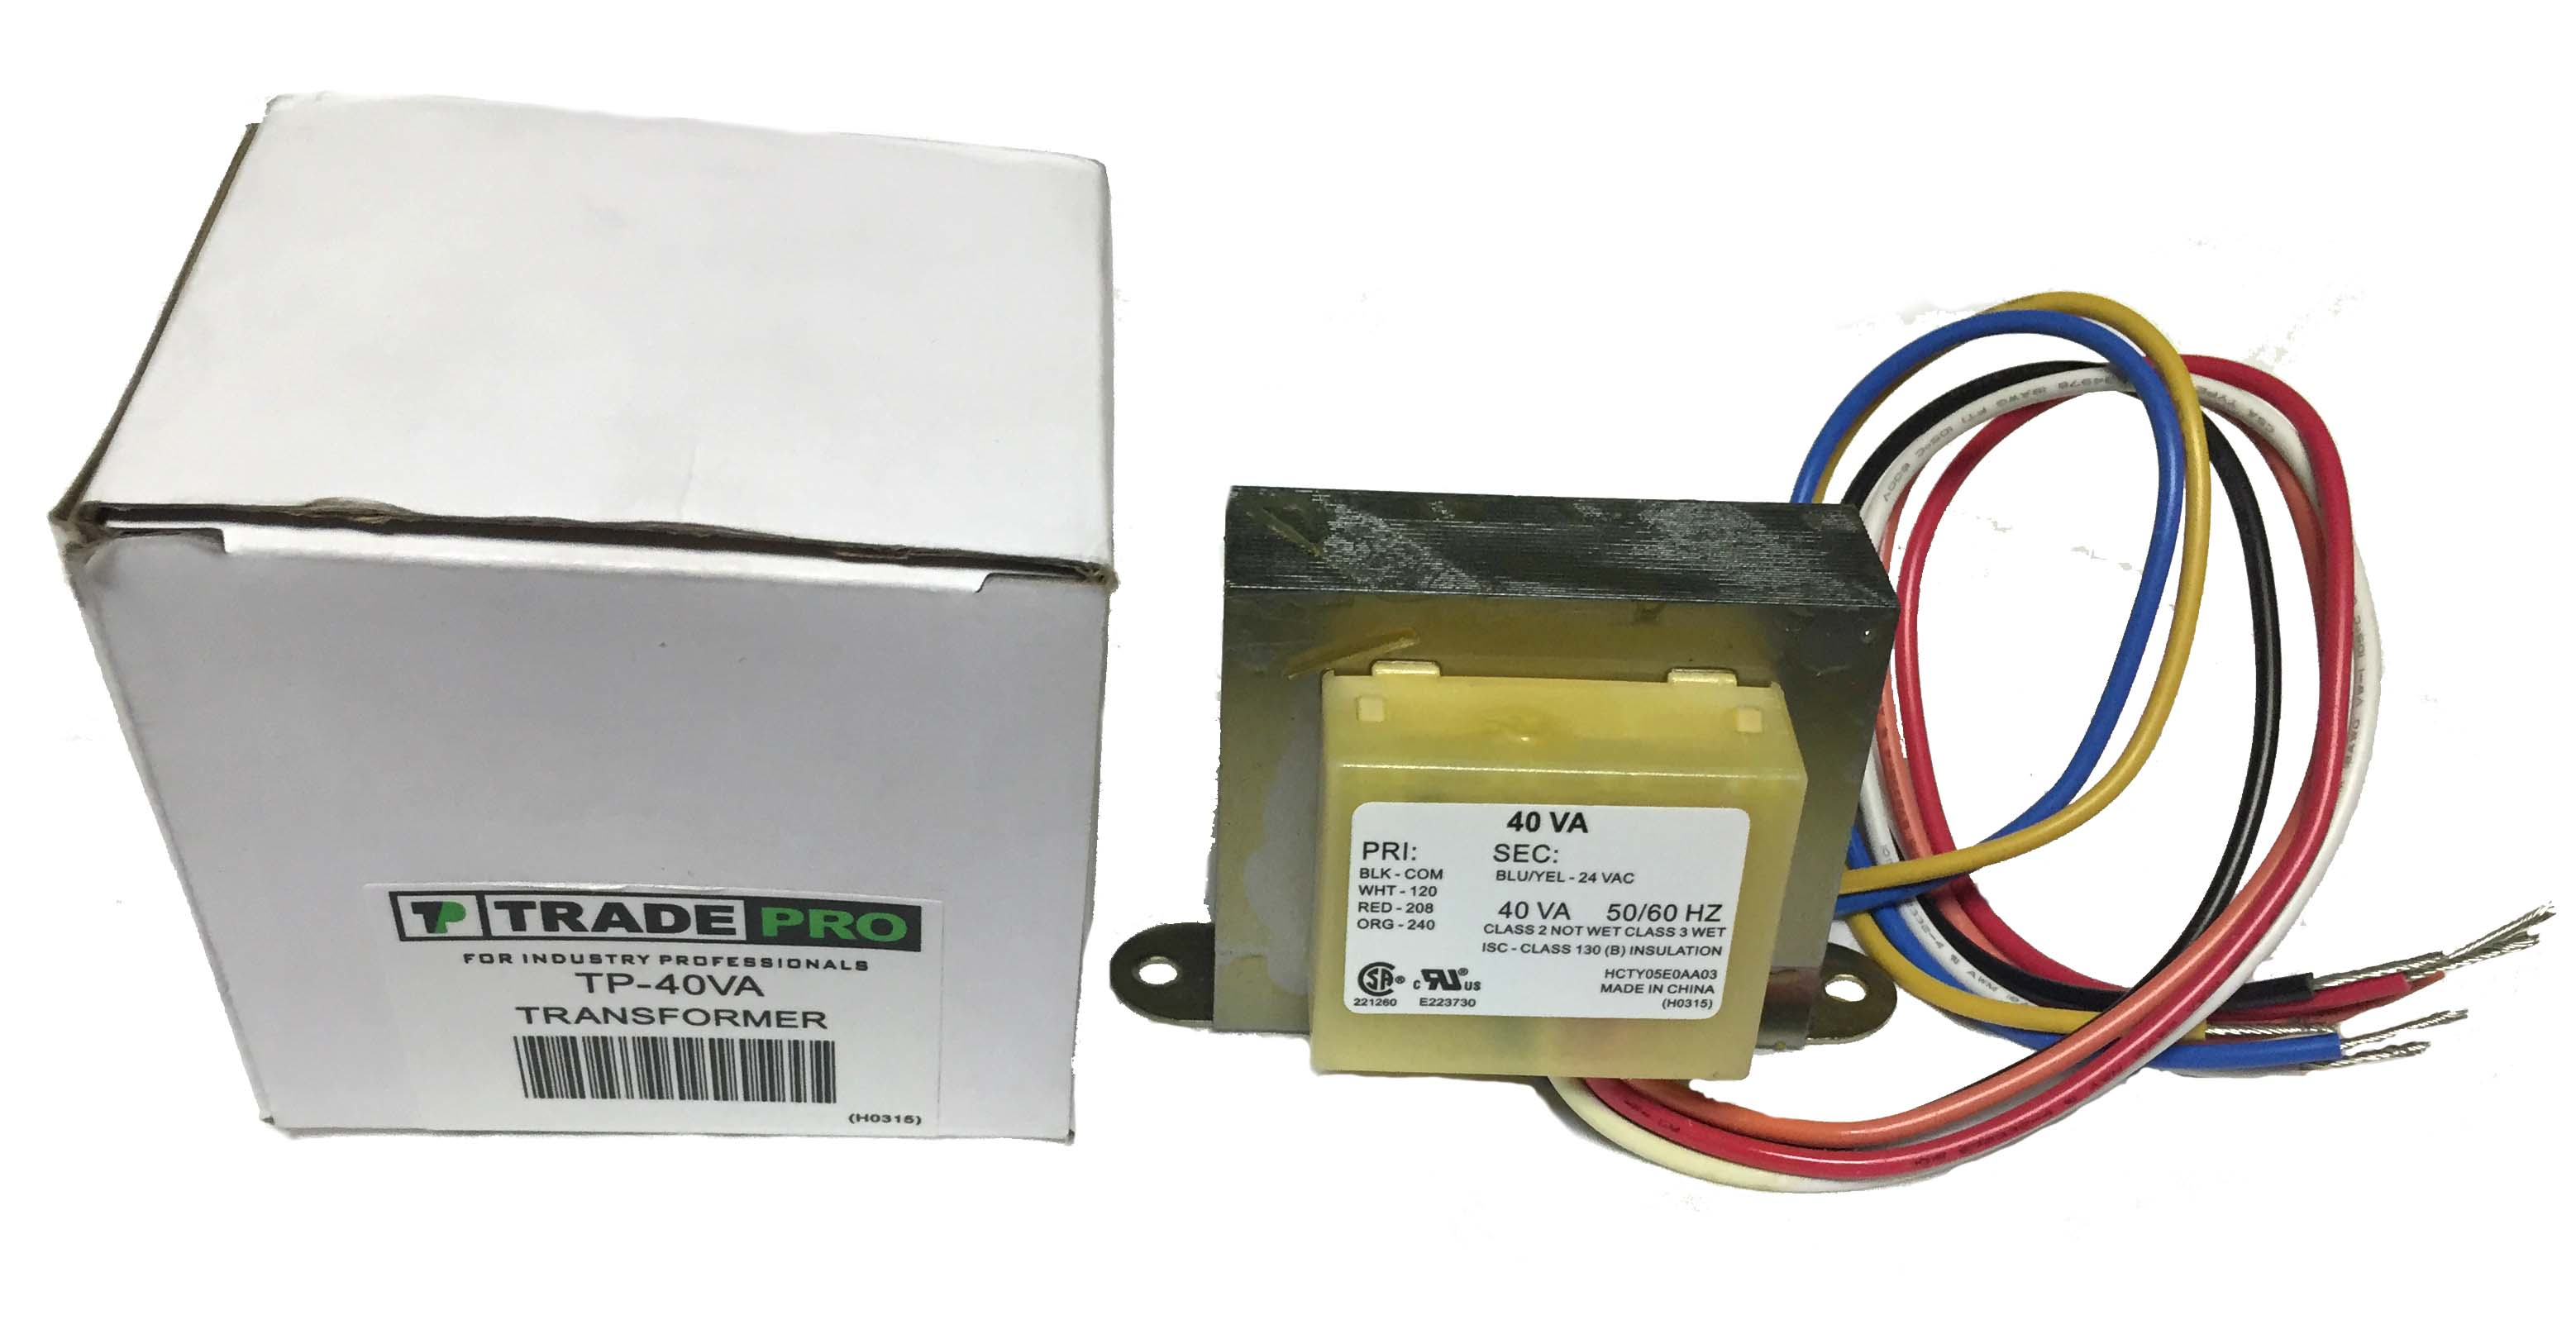 208 to 24 volt transformer wiring diagram audi a4 b5 airbag with wire leads and quick connect universal